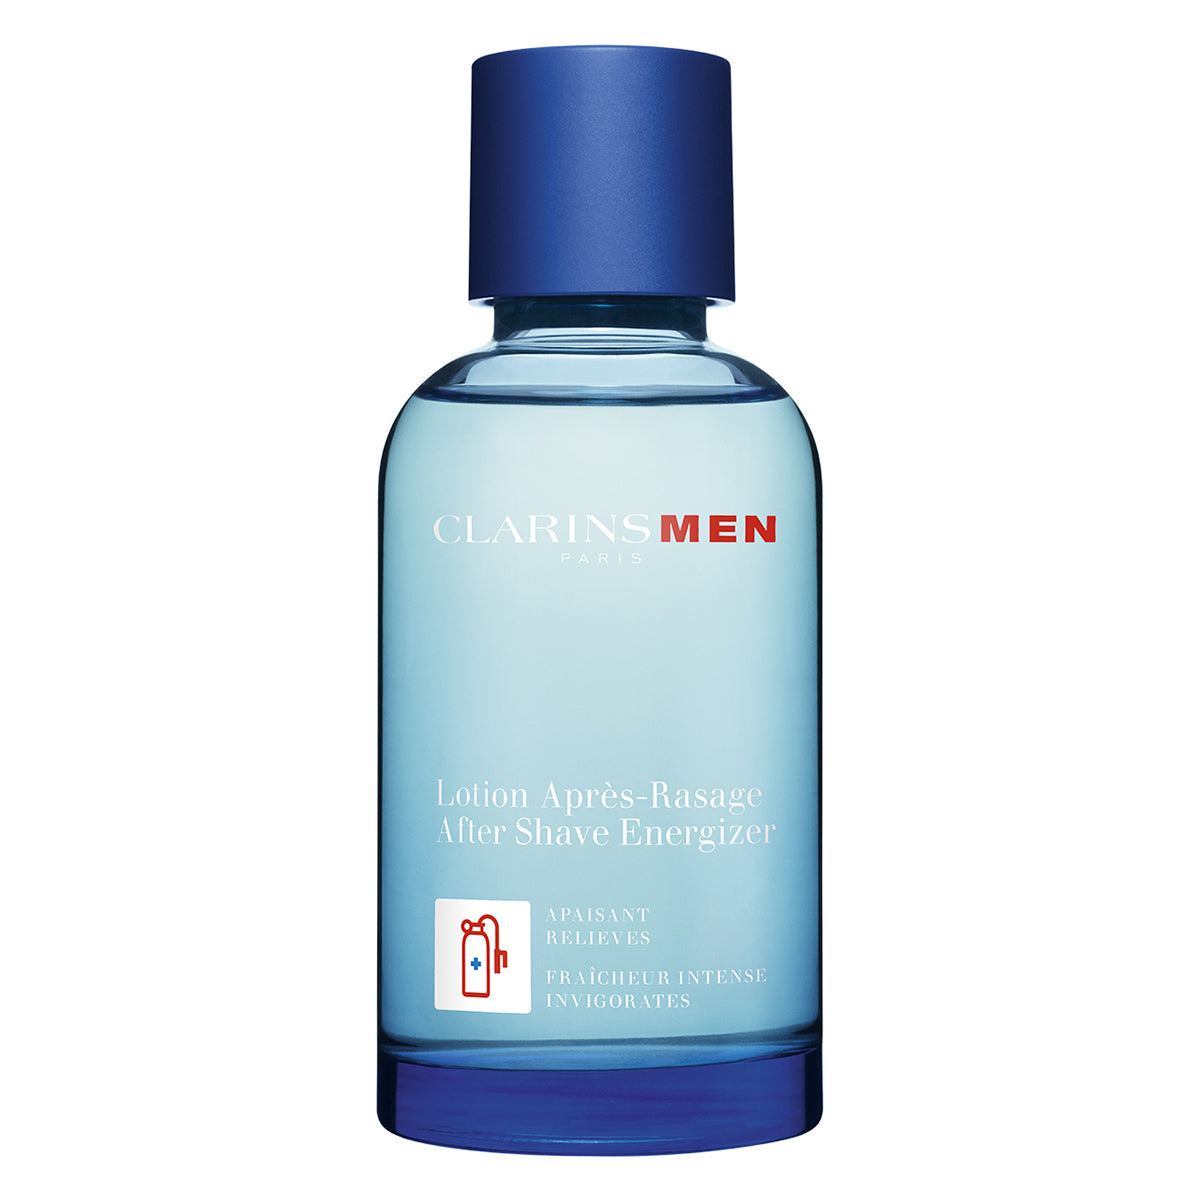 ClarinsMen After Shave Energizer - Perfumería First